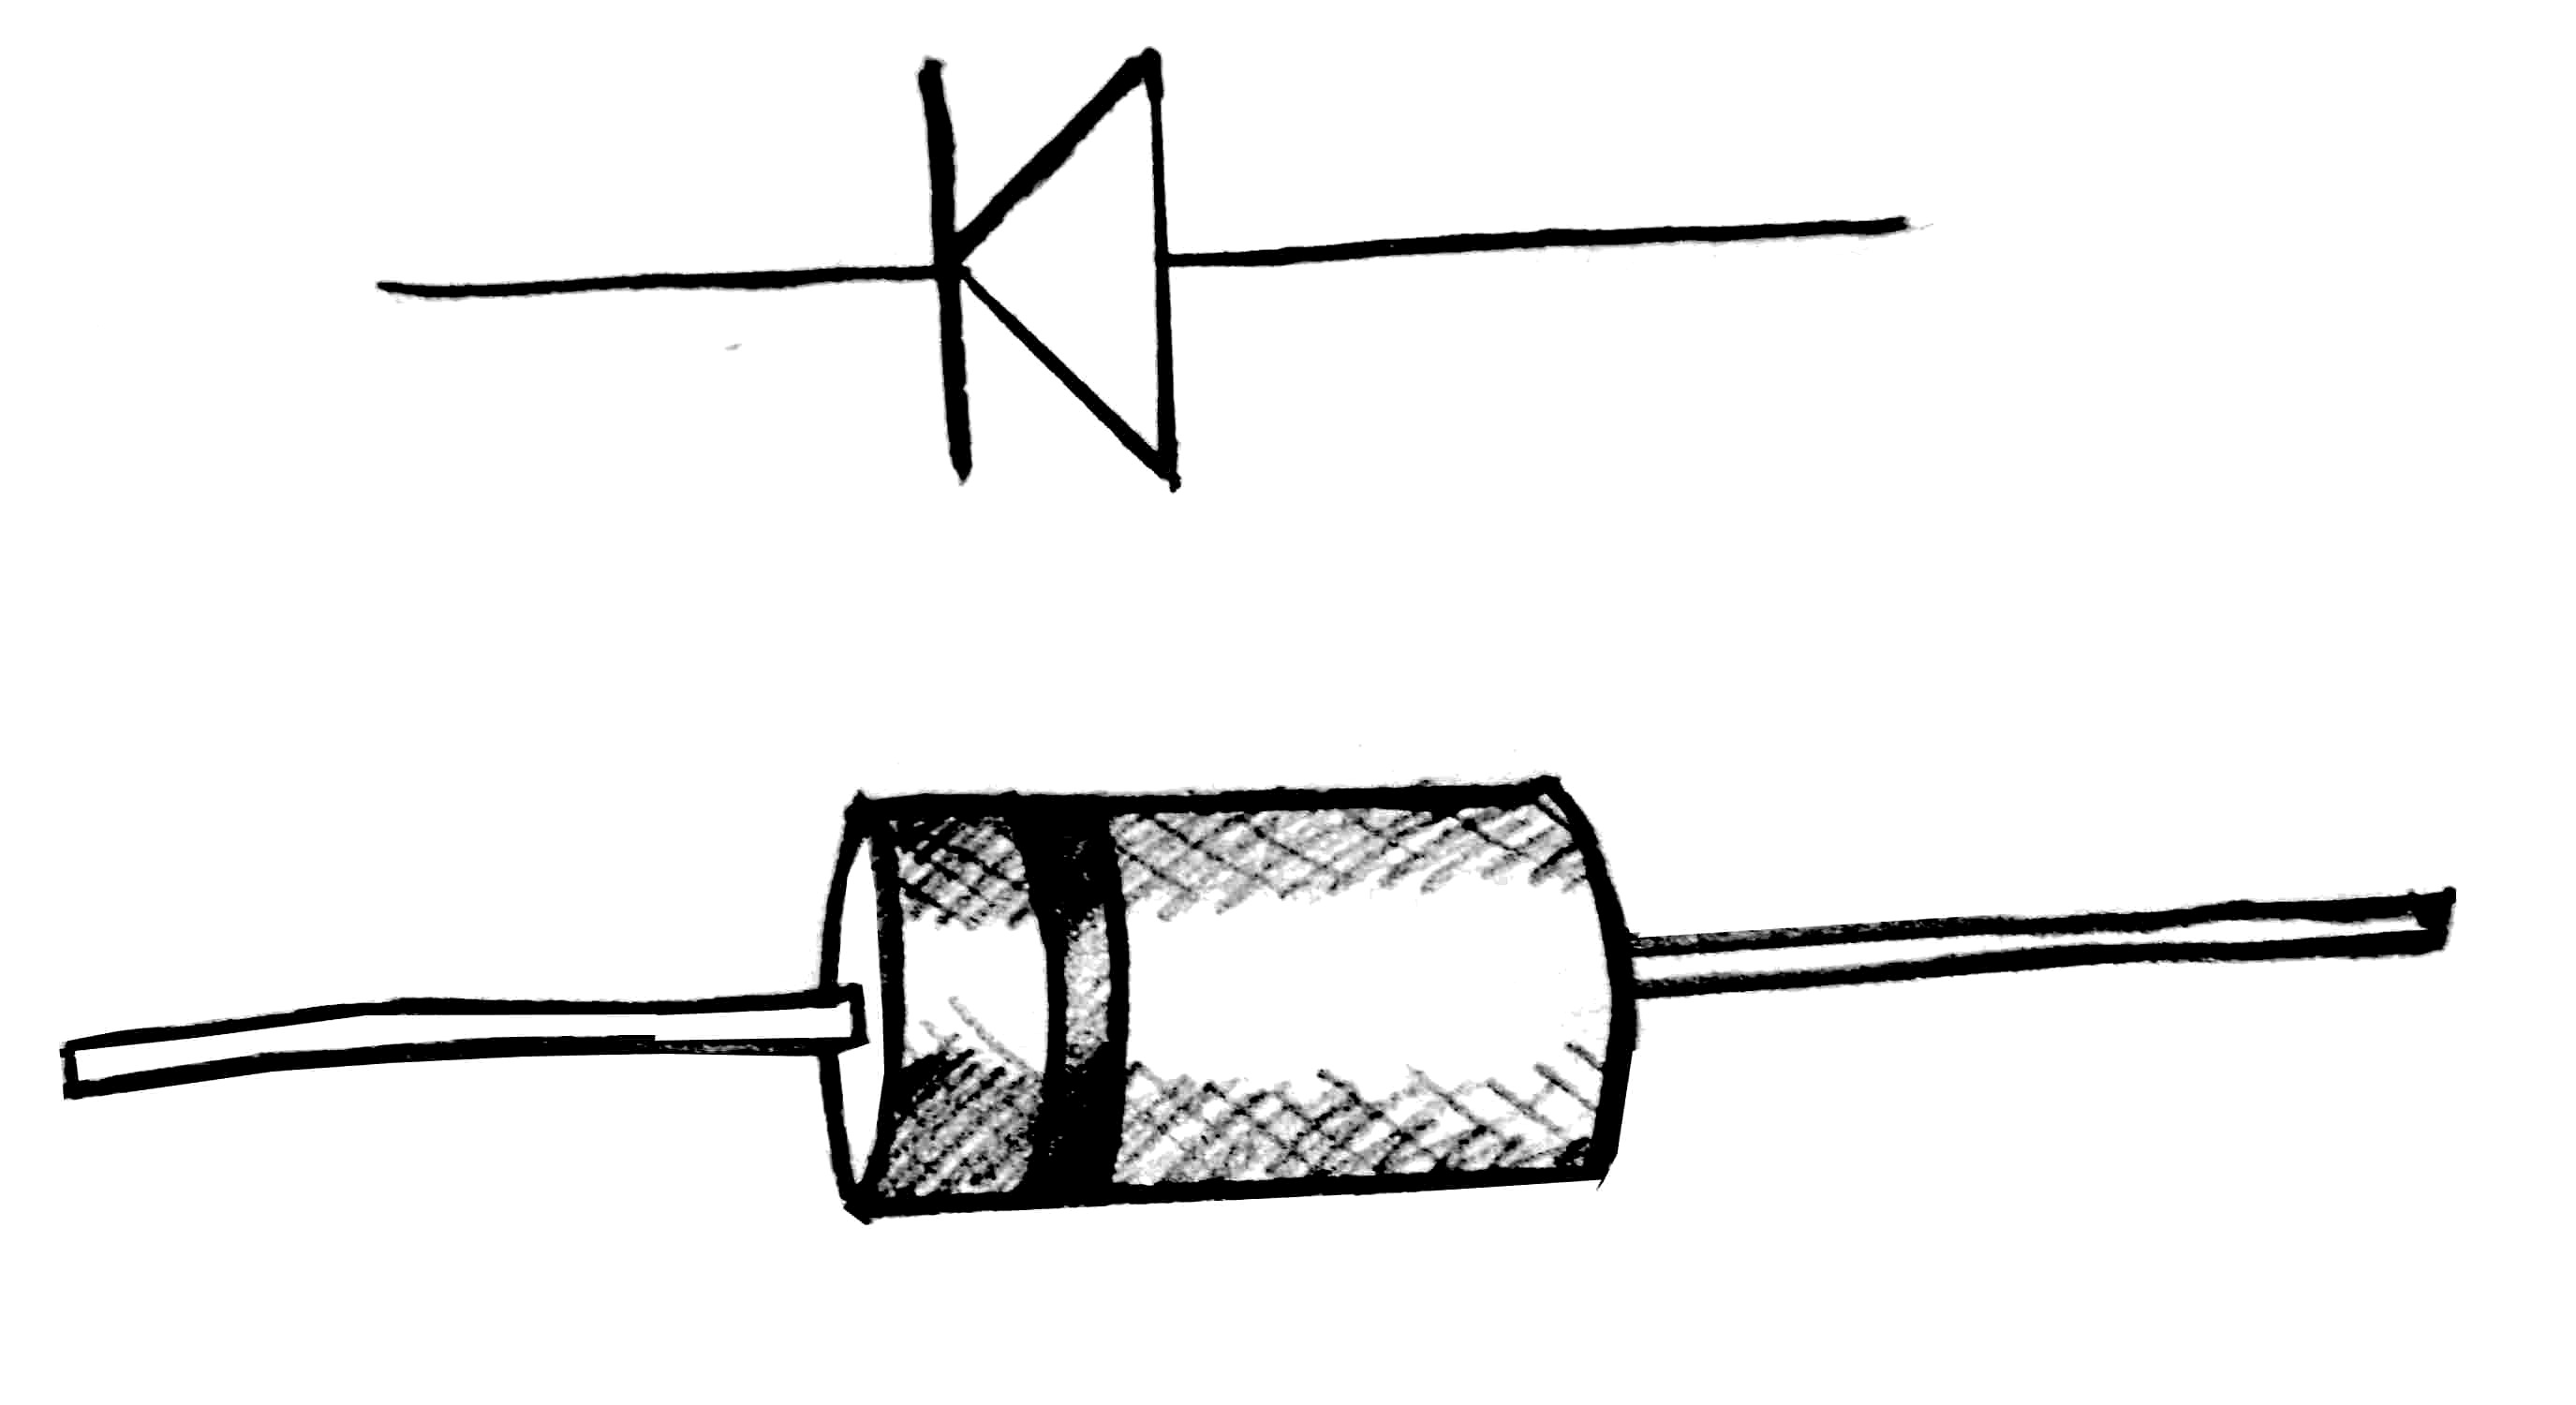 Circuit Symbol For Zener Diode